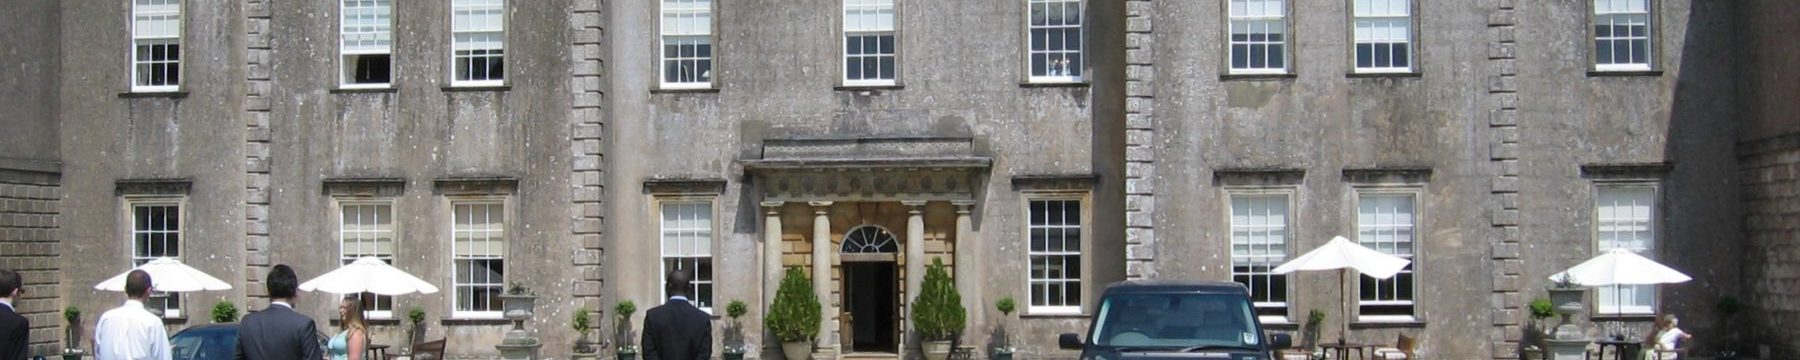 Ston Easton Park Hotels (1)